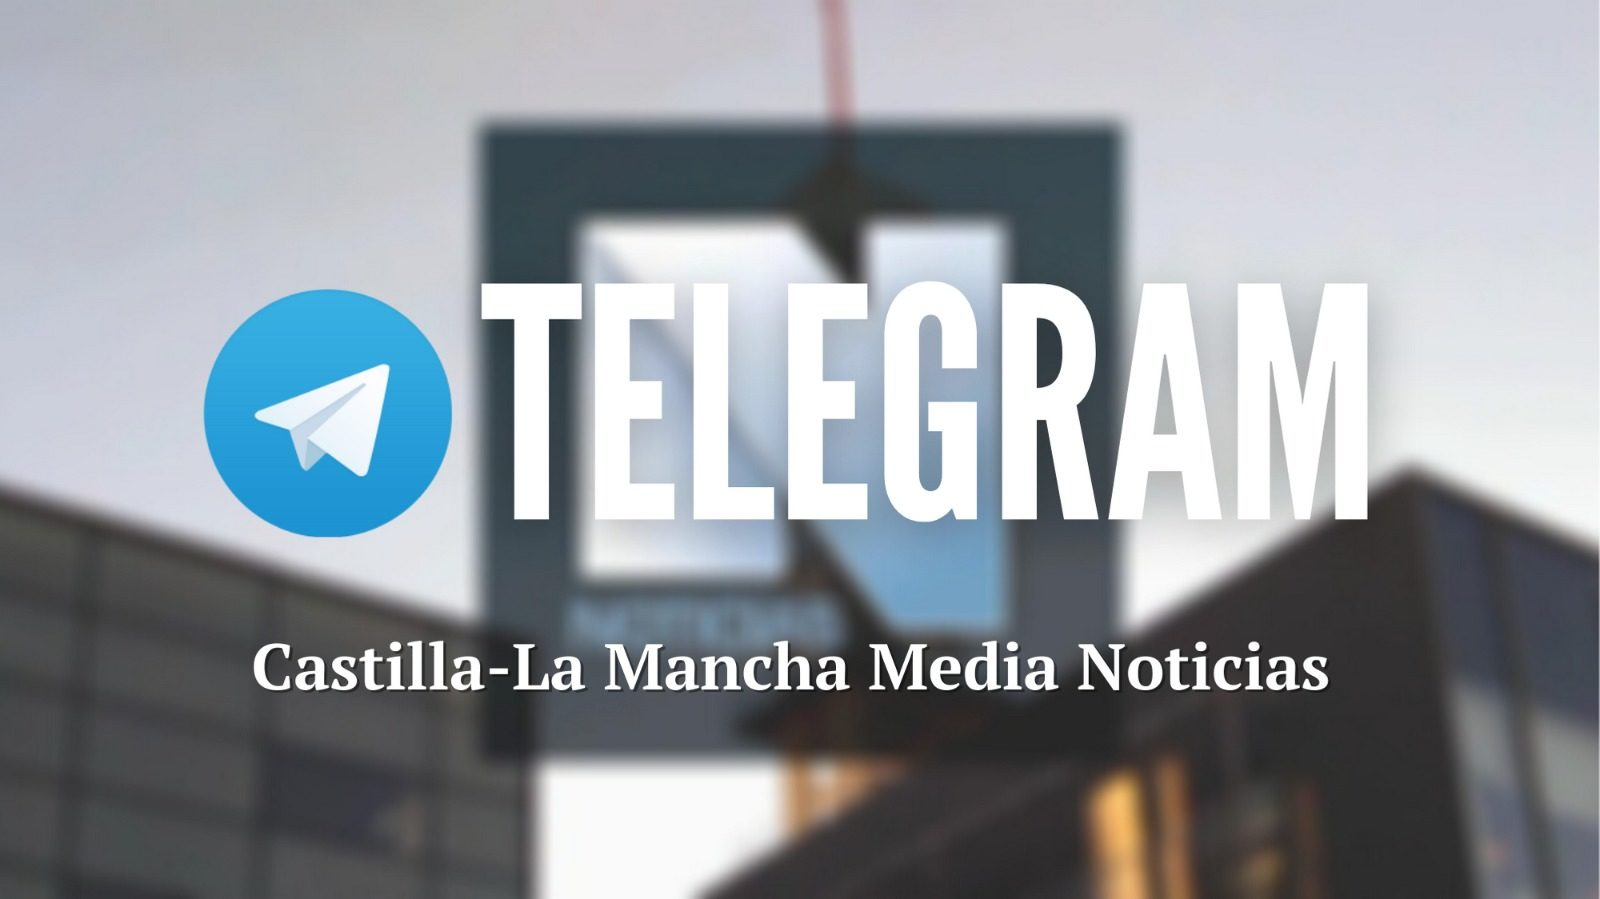 Digital CMM Noticias se estrena en Telegram